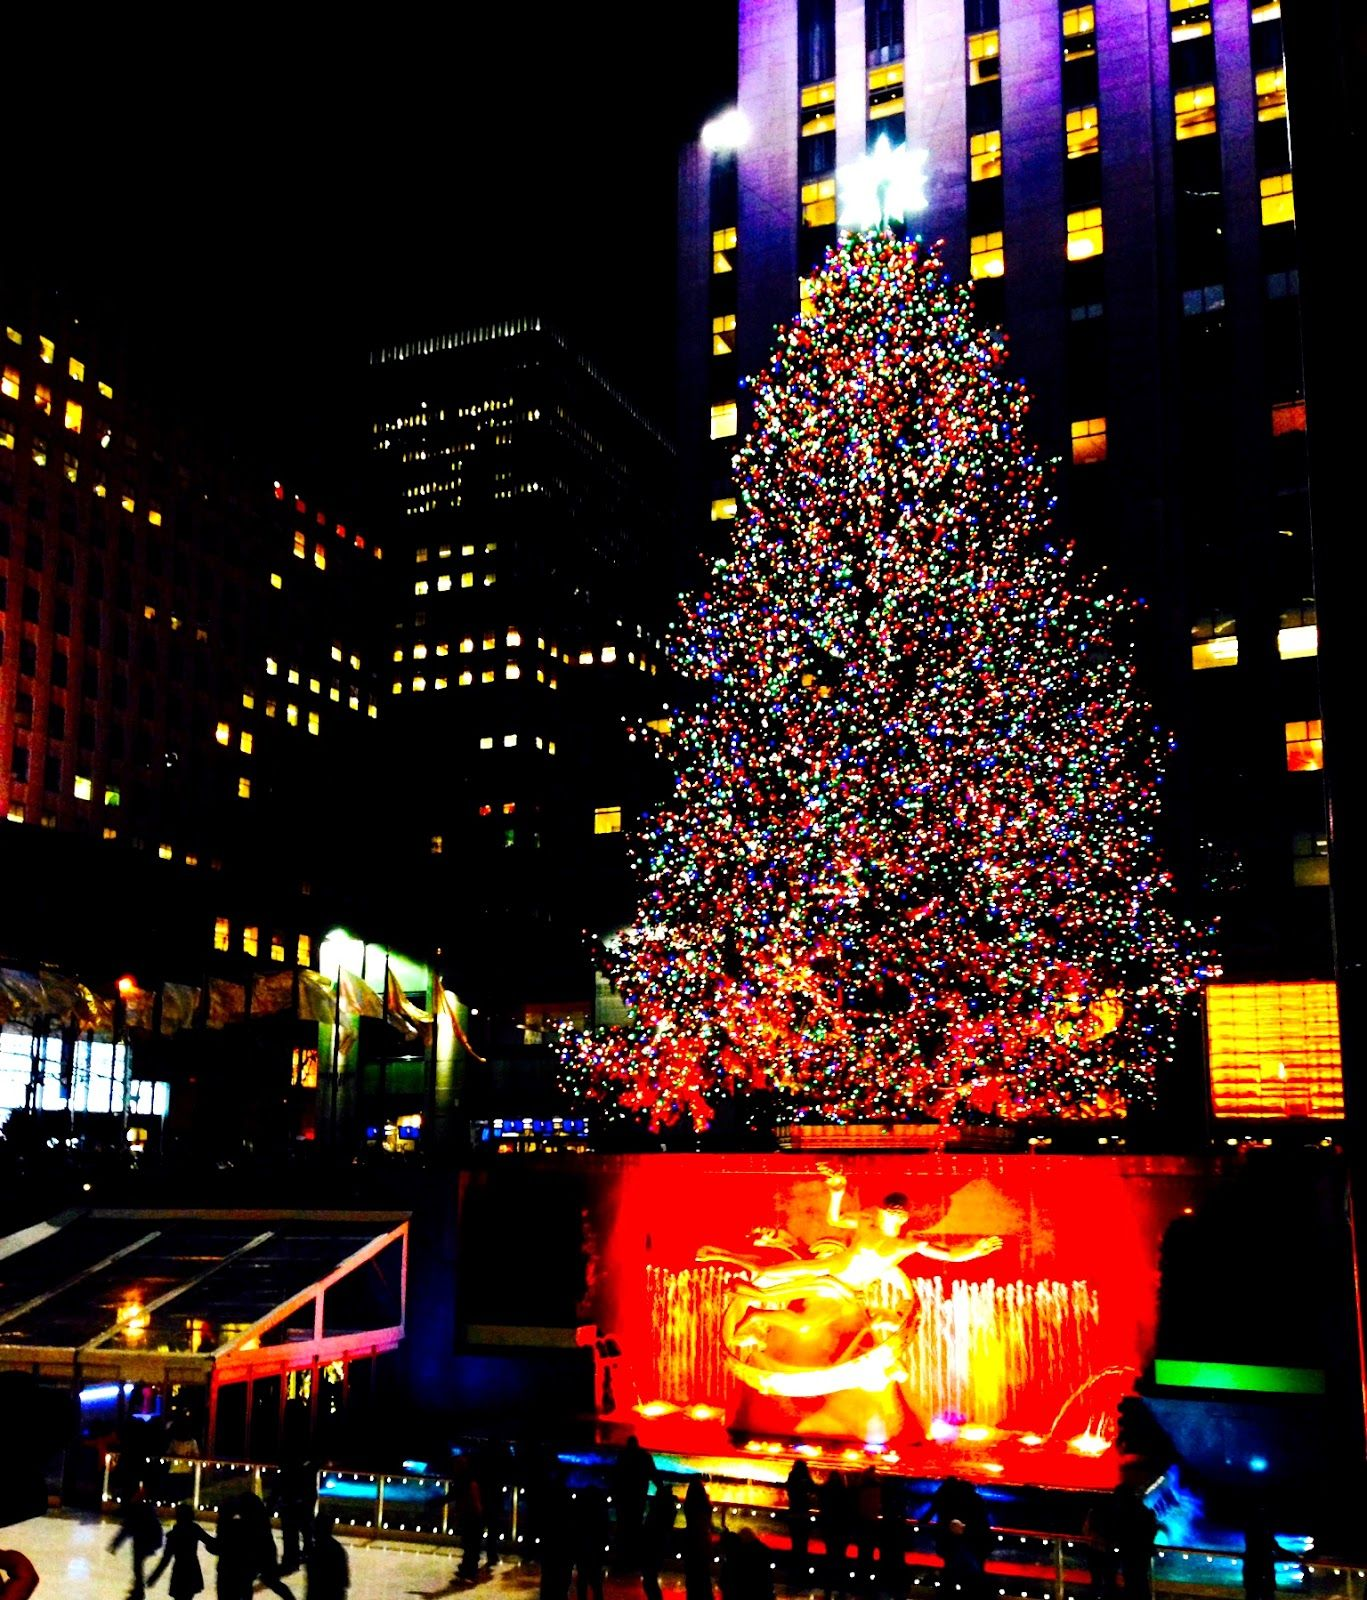 Nyc during the holidays 10 things to do while you re there http www thetravelixir com 2014 11 nyc during holidays 10 things to do html nyc newyork